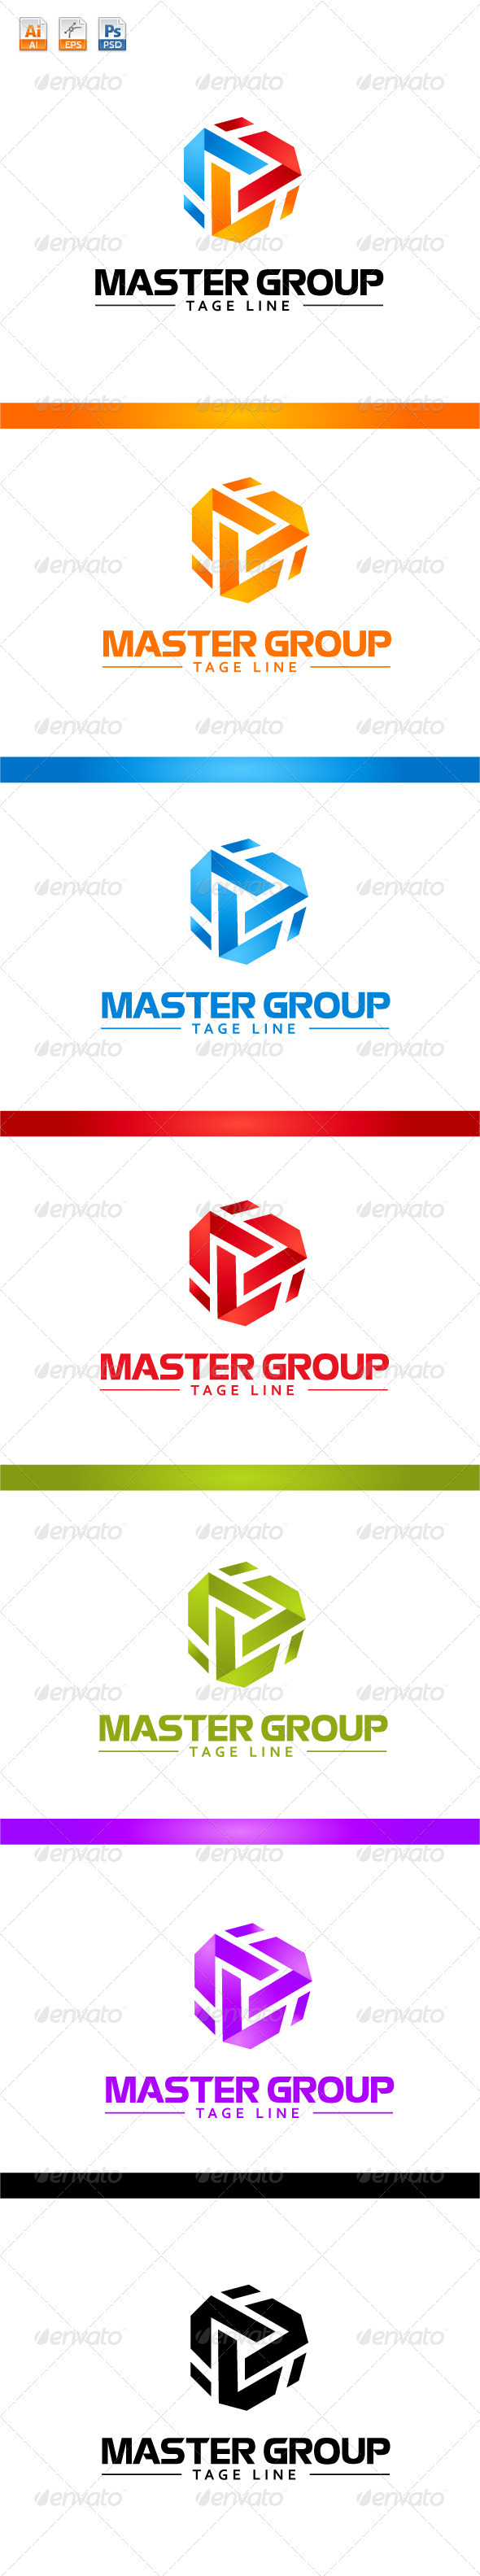 Master Group Logo - Vector Abstract